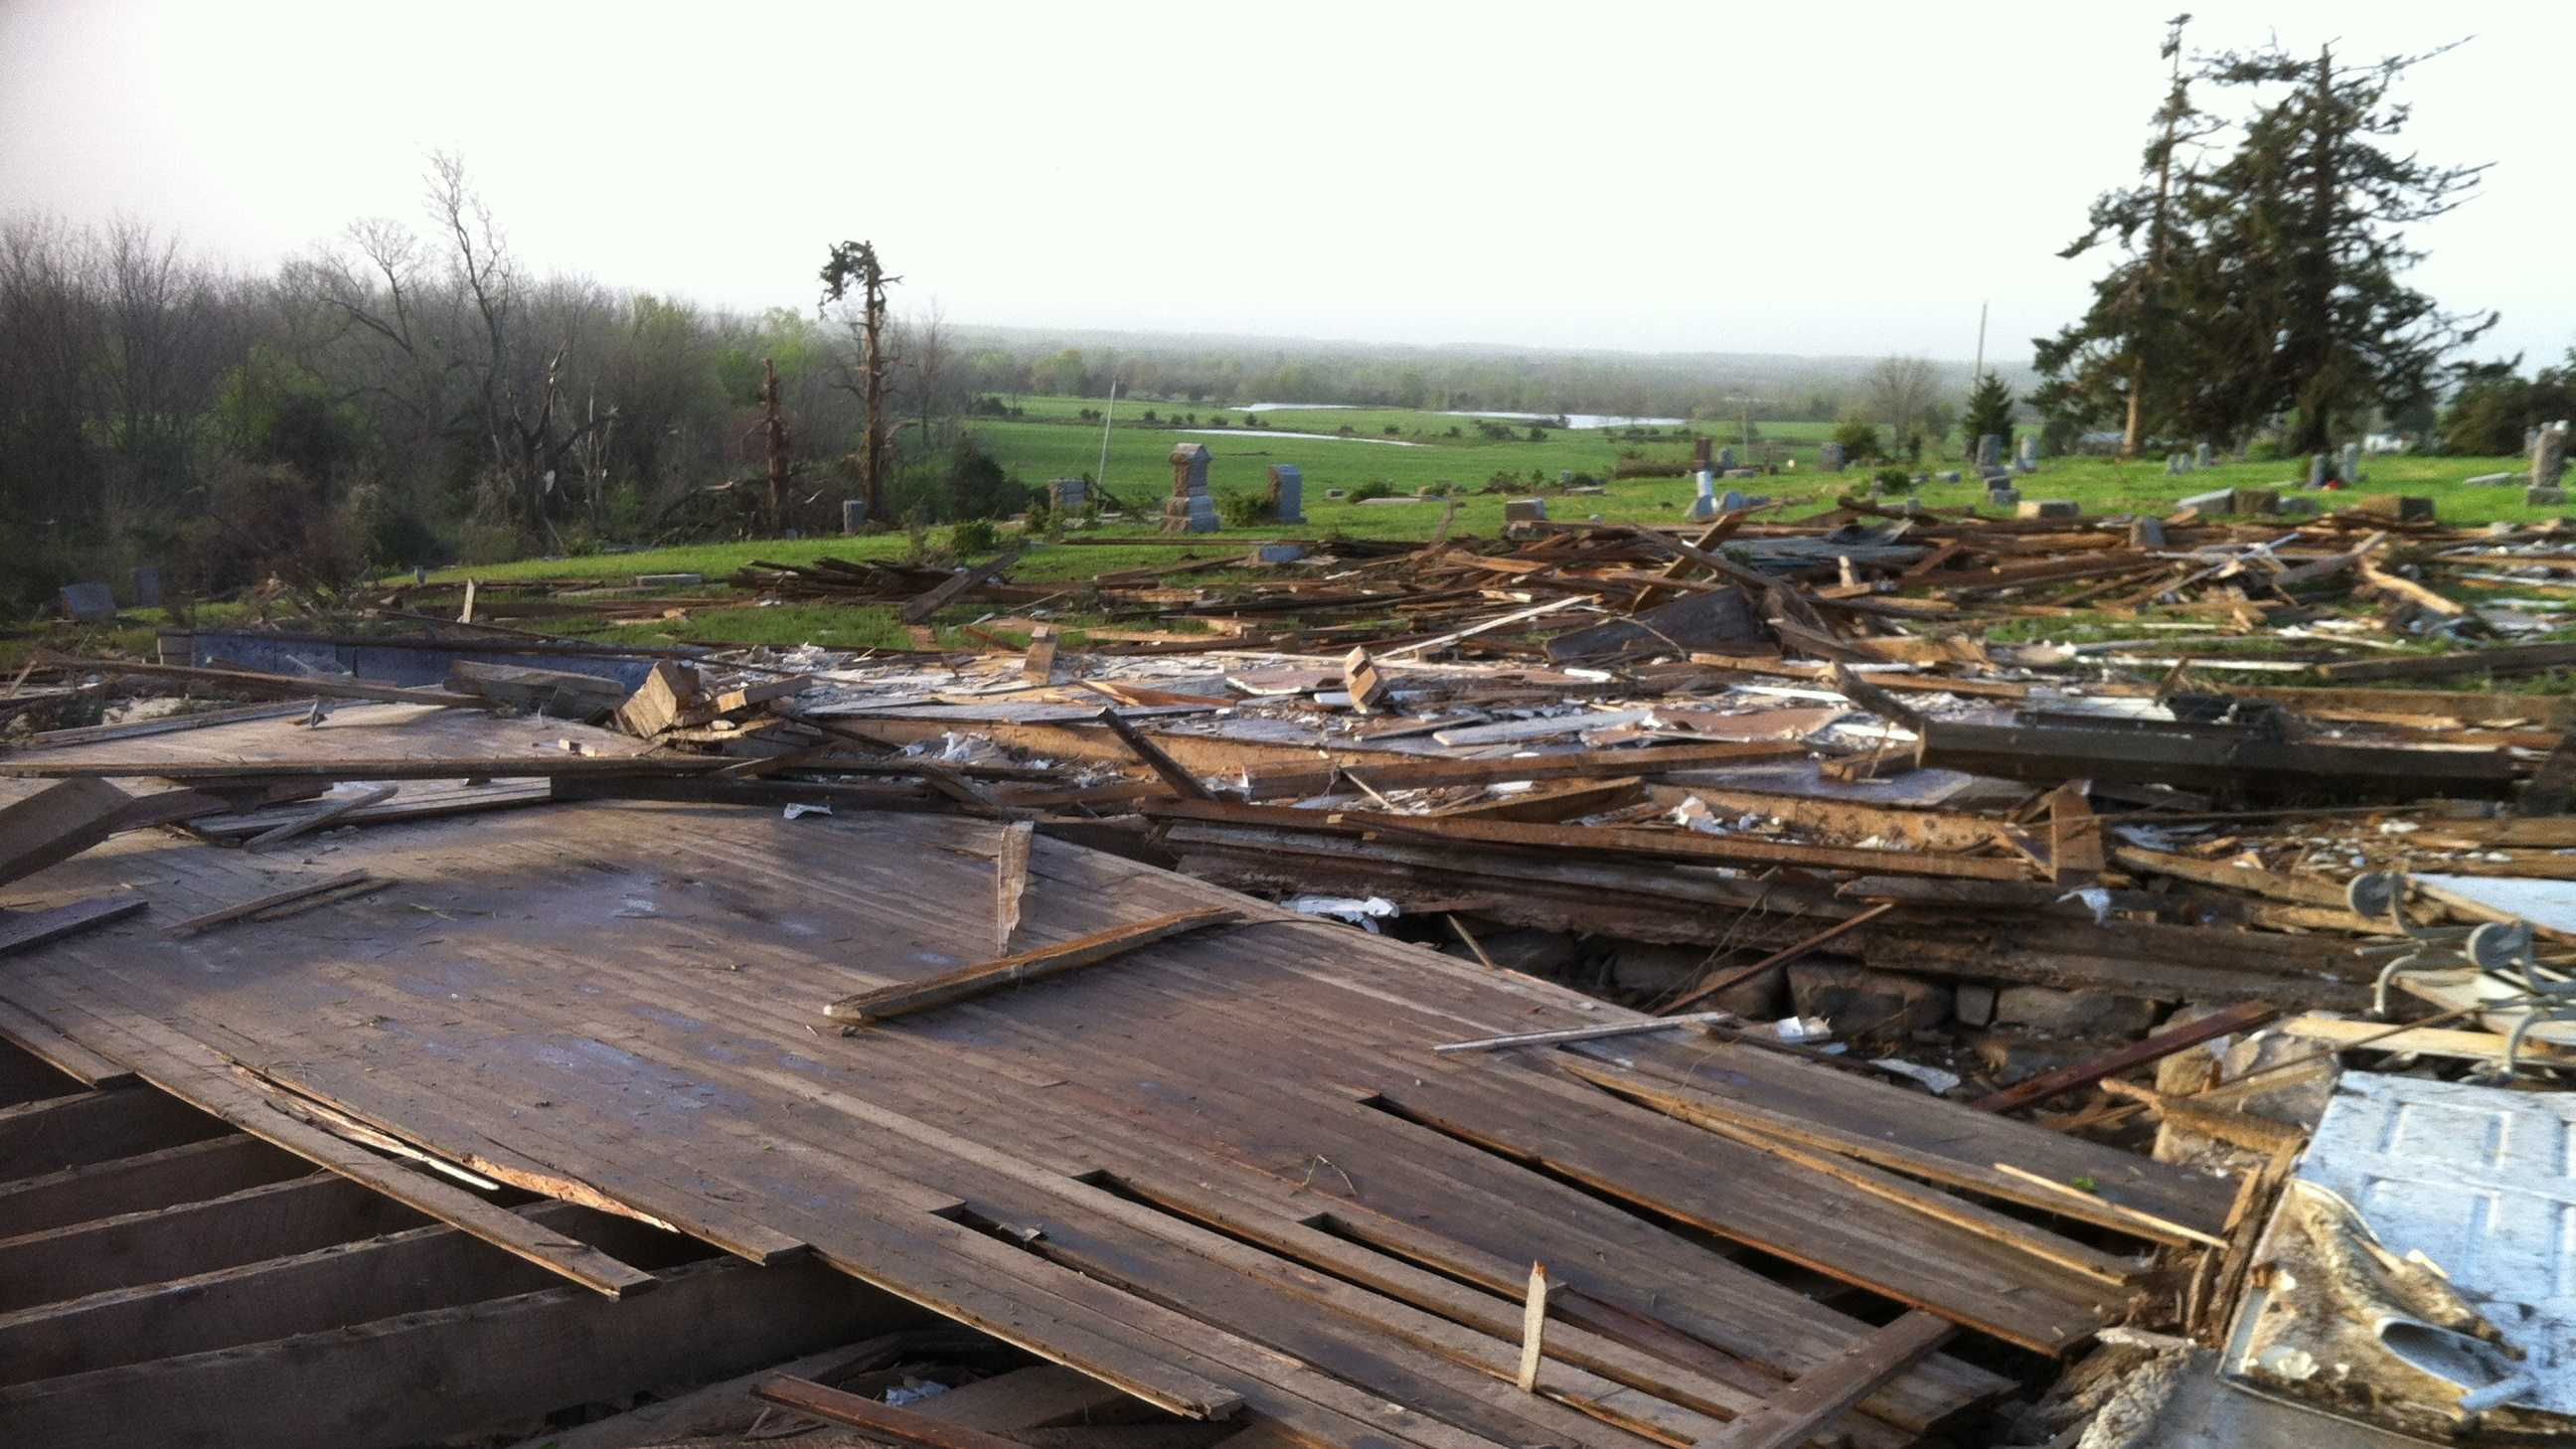 A report from Pleasanton, Kan., where a large tornado destroyed a historic church on Sunday afternoon.